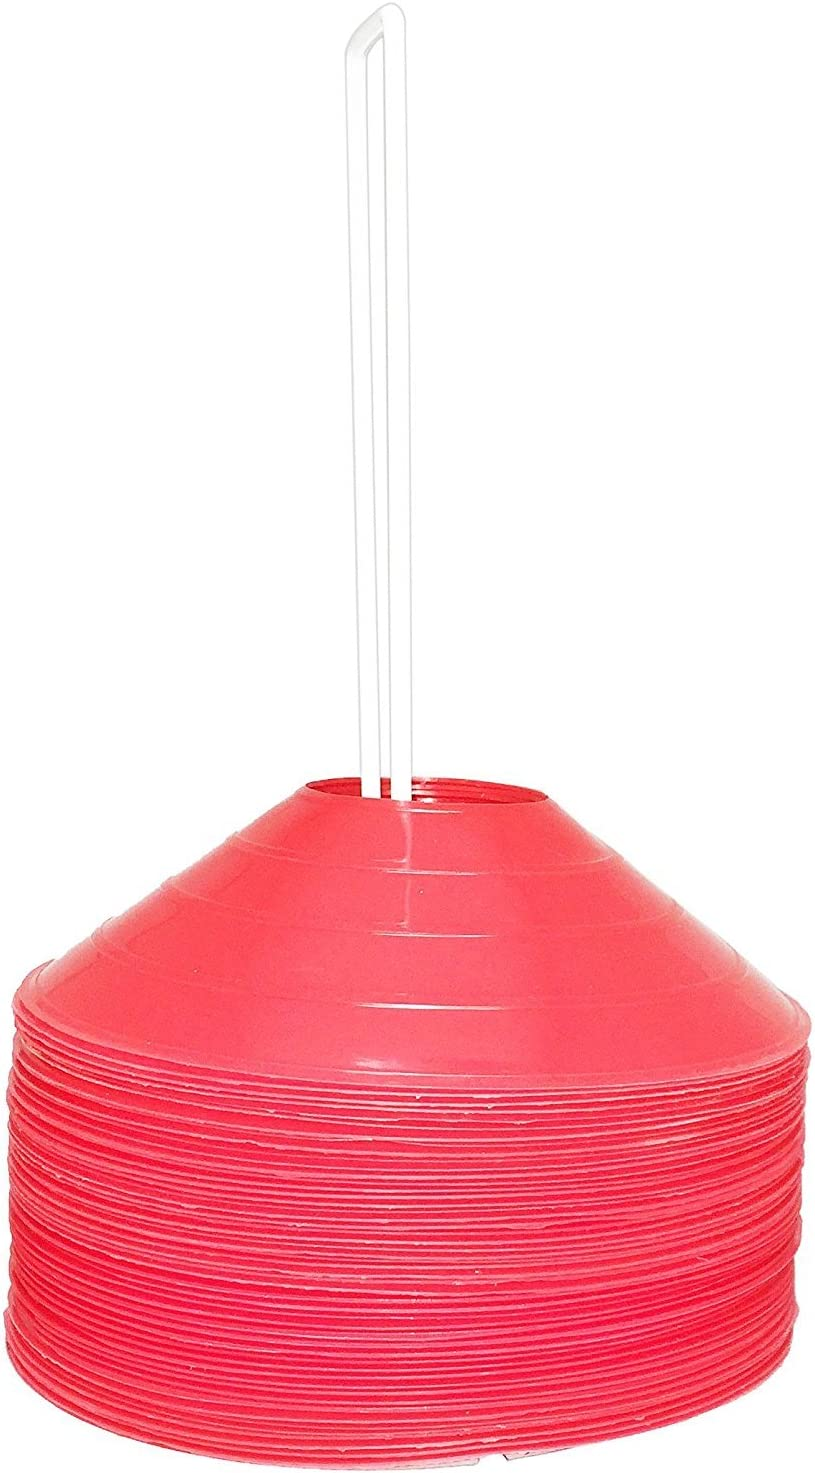 BlueDot Trading Sport Disc Mesa Mall Red Cones Pack 25 Ranking TOP8